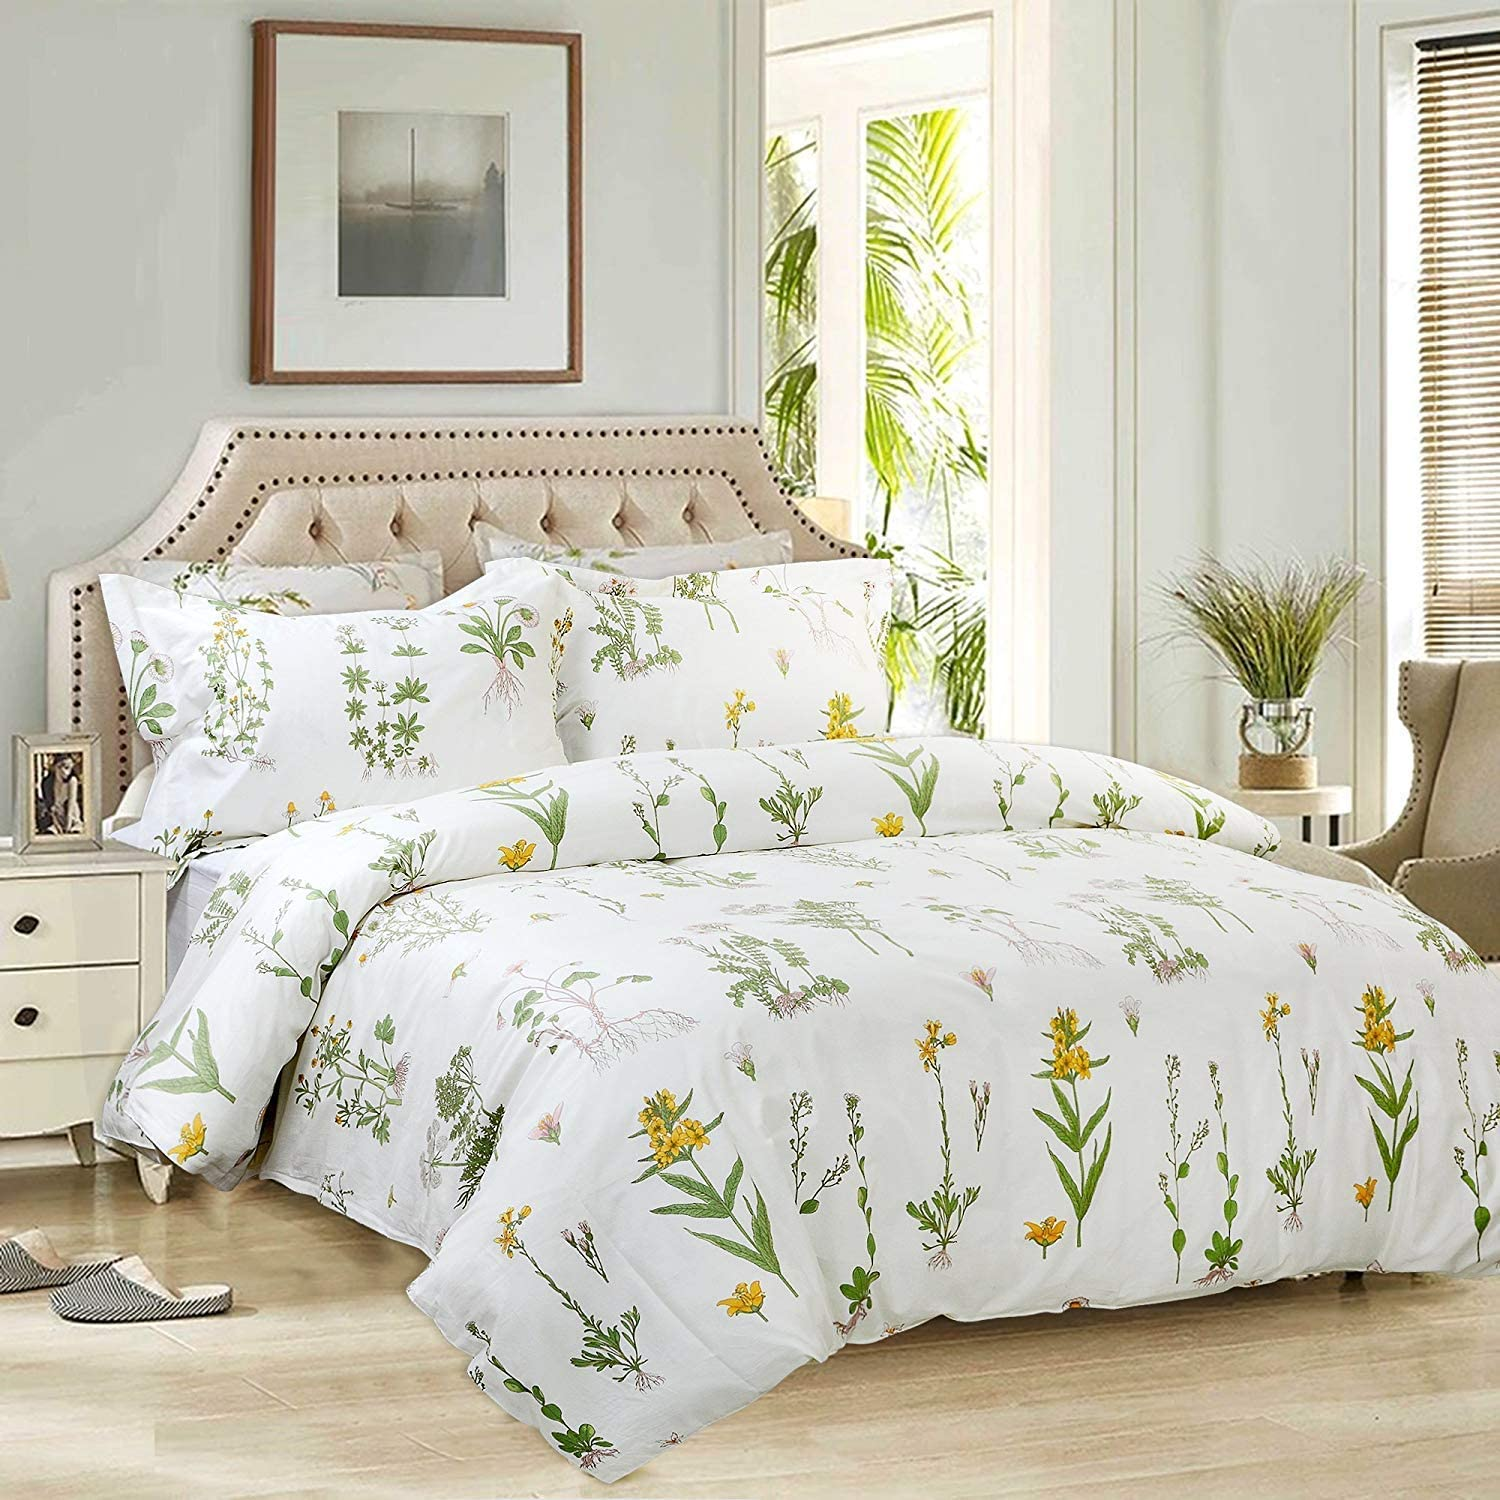 FADFAY 3 Pieces 100% Cotton Twin XL Duvet Cover Set Floral Bedding Set Flower Printed Parttern with Zipper Closure 1 Duvet Cover 2 Pillowcases for Kids Adult